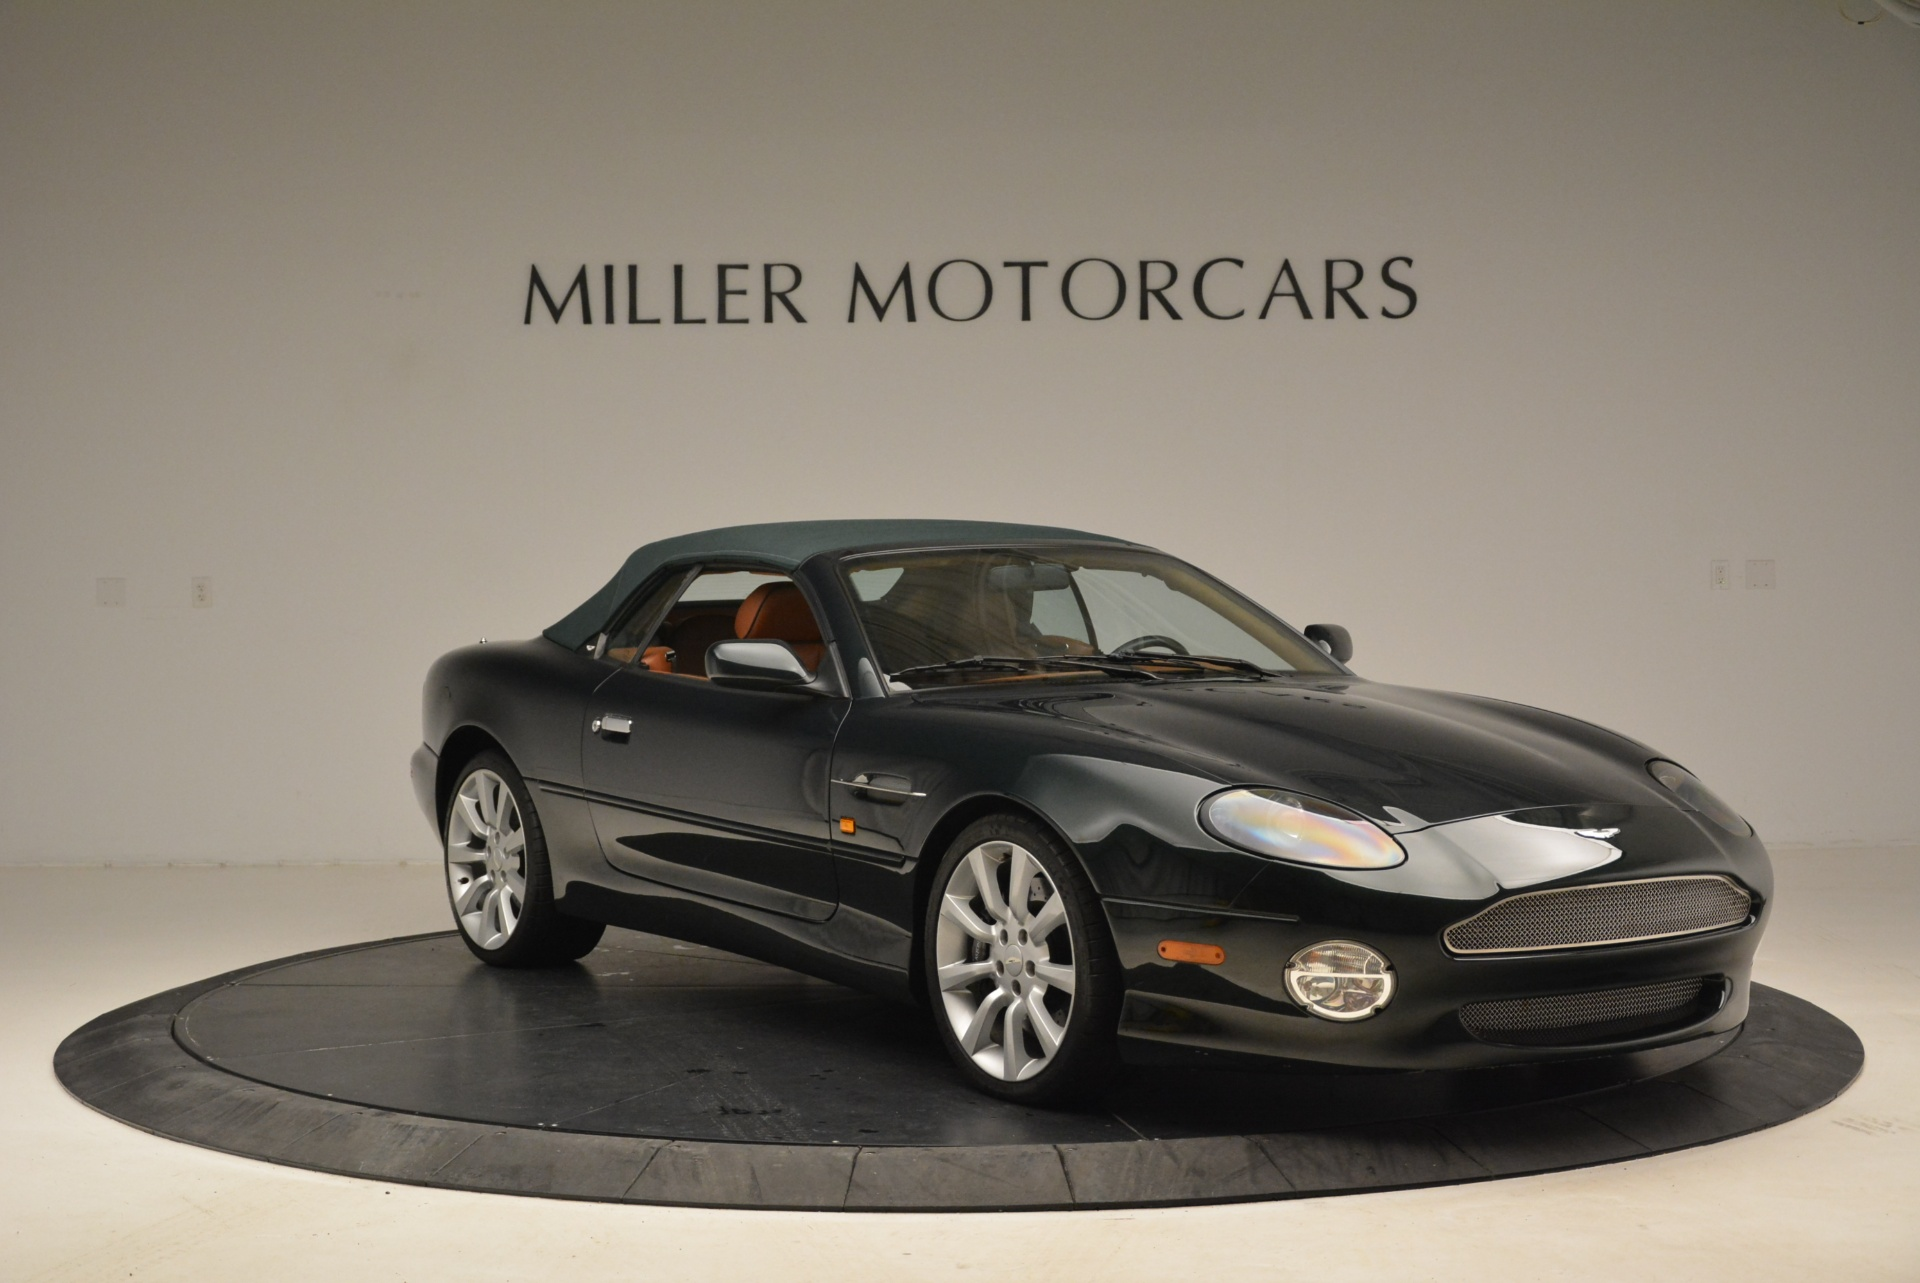 Used 2003 Aston Martin DB7 Vantage Volante For Sale In Westport, CT 2084_p13